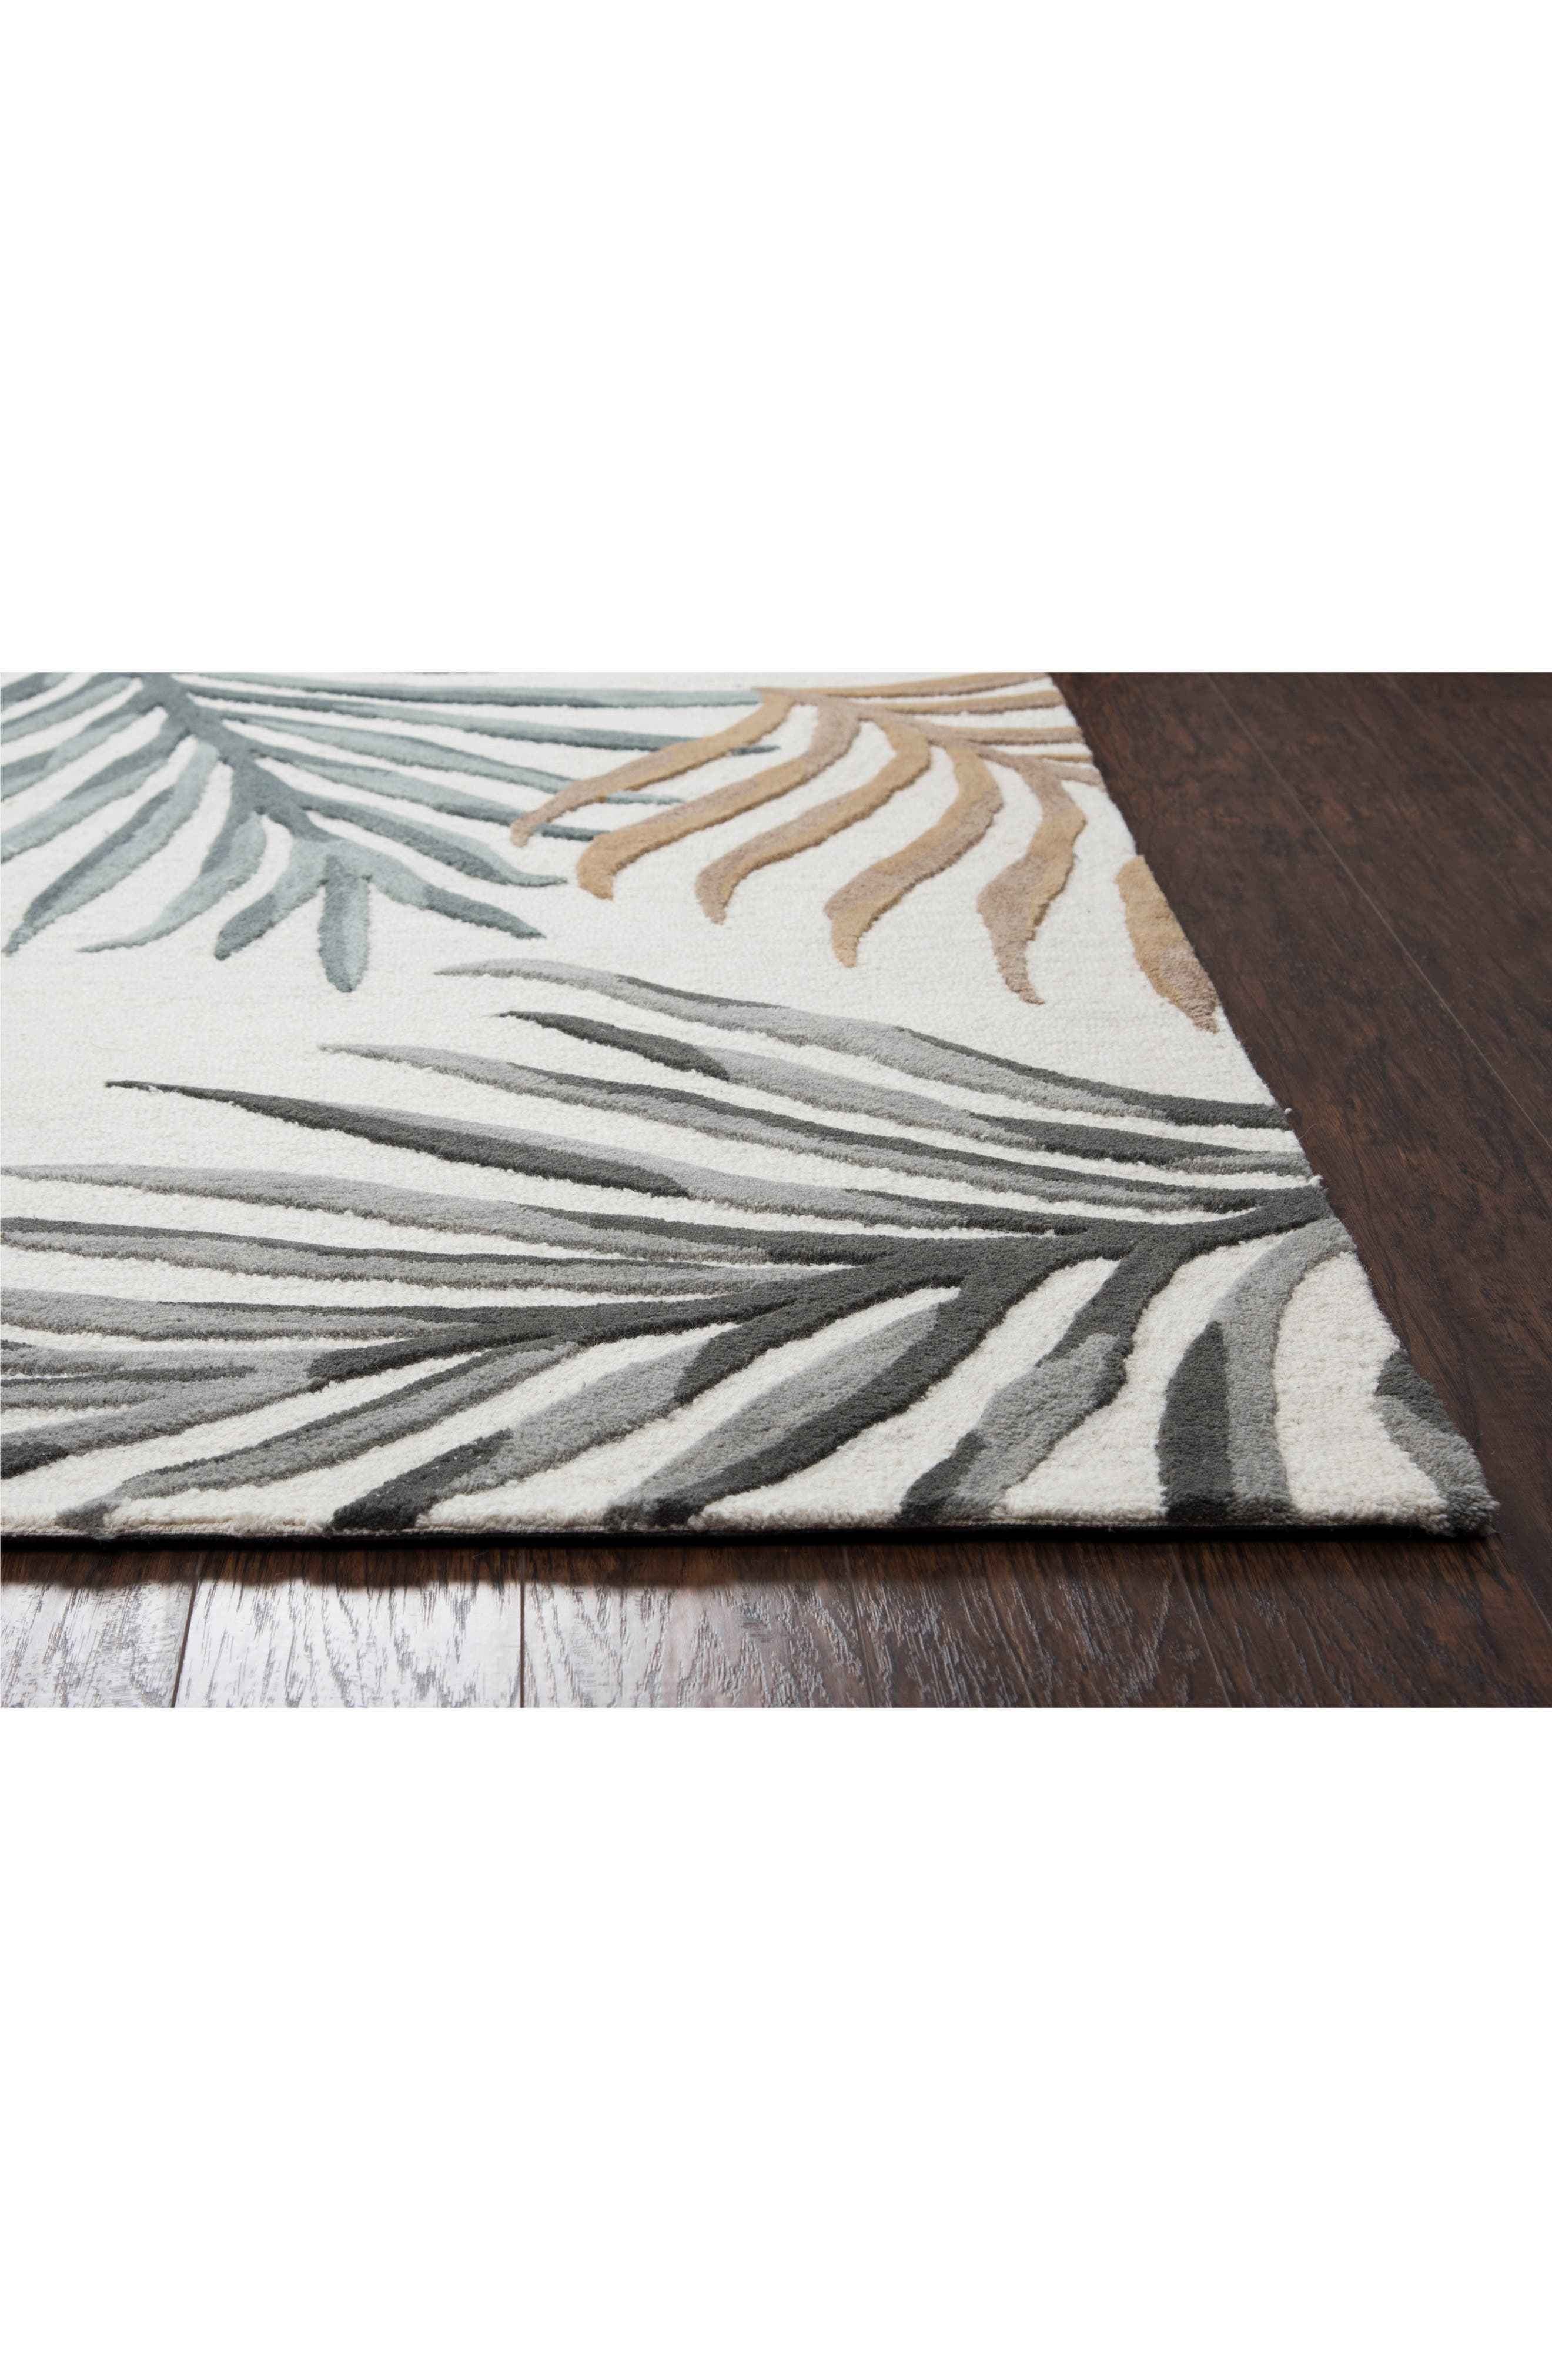 Palm Hand Tufted Wool Area Rug,                             Alternate thumbnail 2, color,                             900